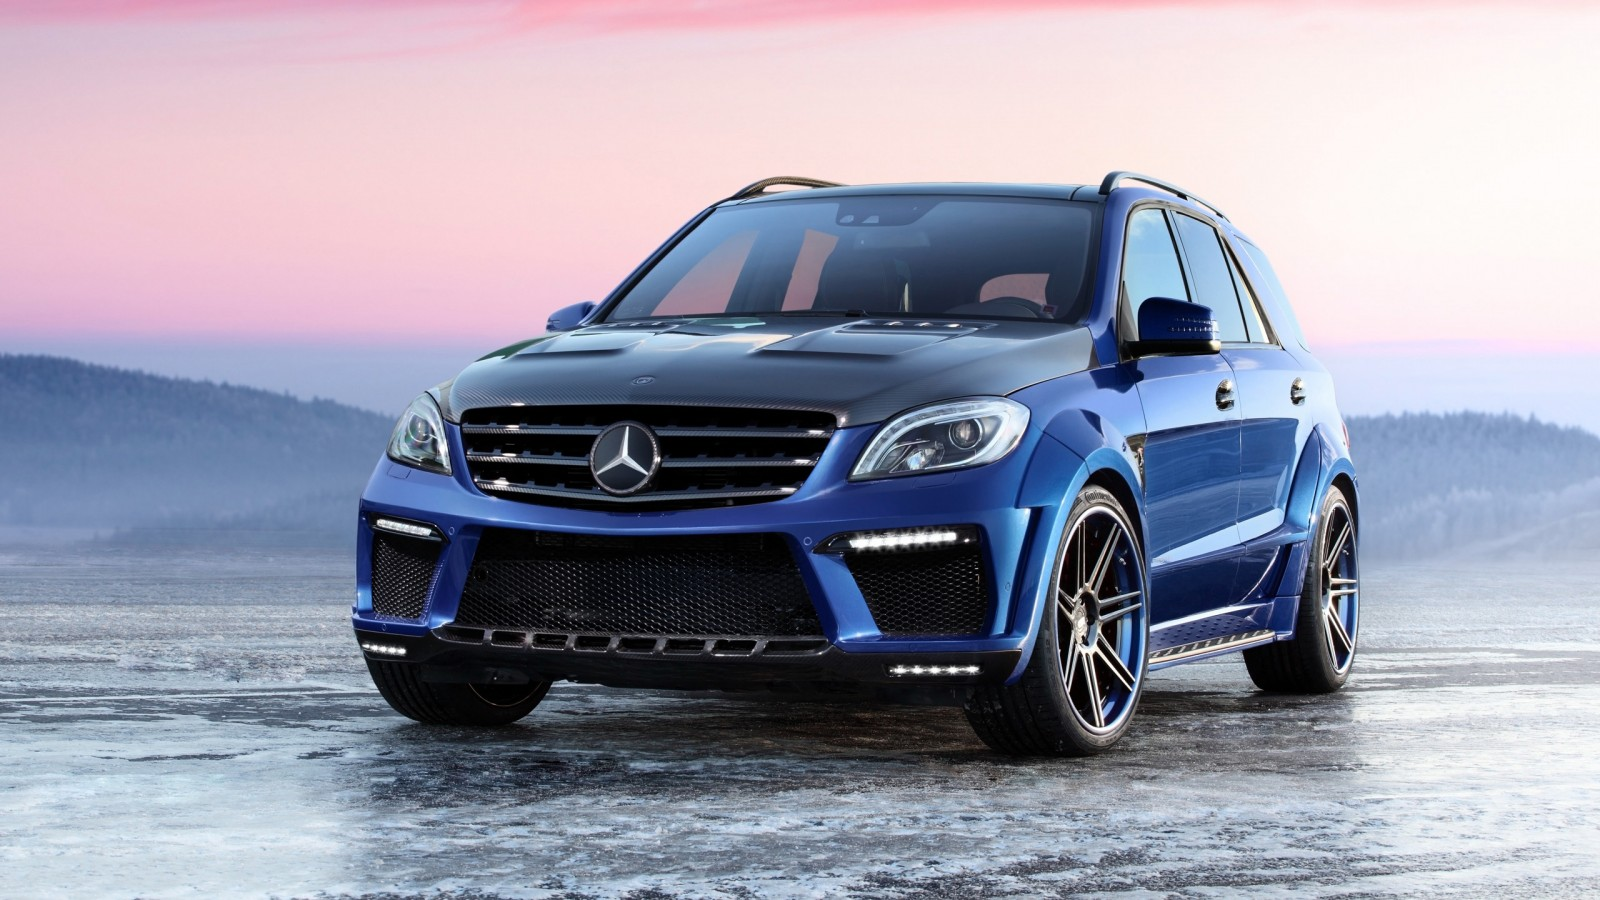 2013 mercedes benz ml 63 amg inferno by topcar wallpaper. Black Bedroom Furniture Sets. Home Design Ideas